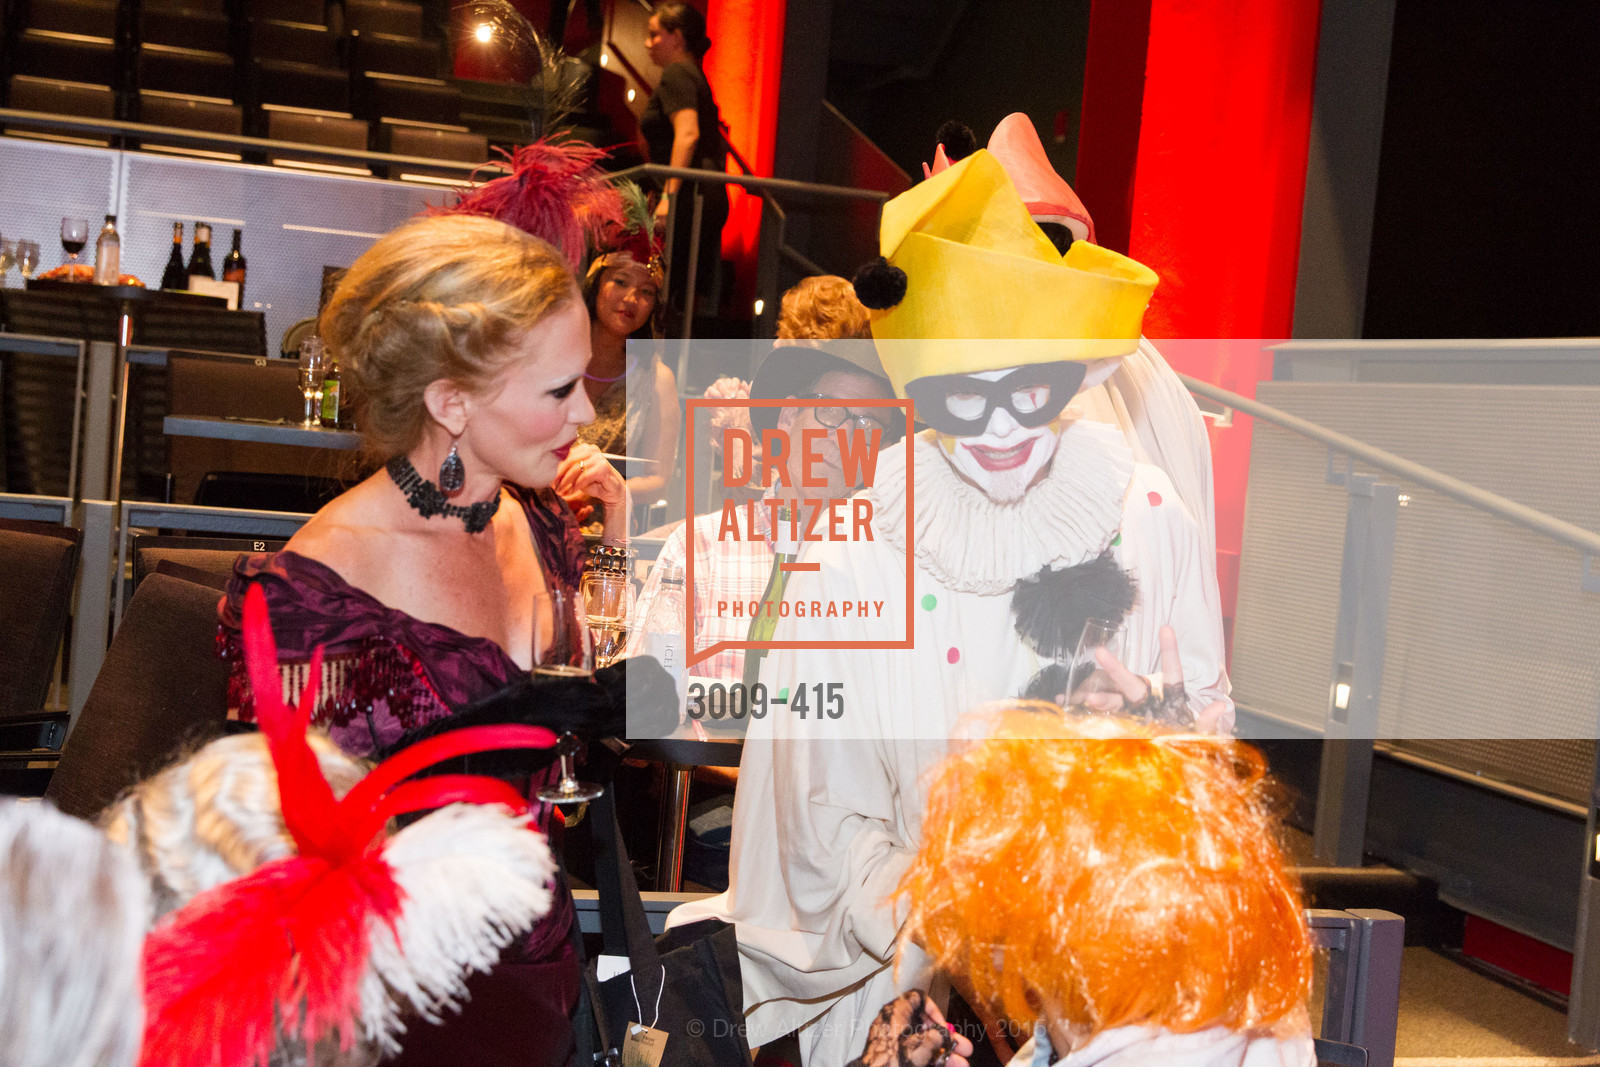 Holly Hollenbeck, Rusty Rueff, SPOOKED AT THE STRAND Presented by the American Conservatory Theater, The Strand Theater. 1127 Market Street, October 26th, 2015,Drew Altizer, Drew Altizer Photography, full-service agency, private events, San Francisco photographer, photographer california